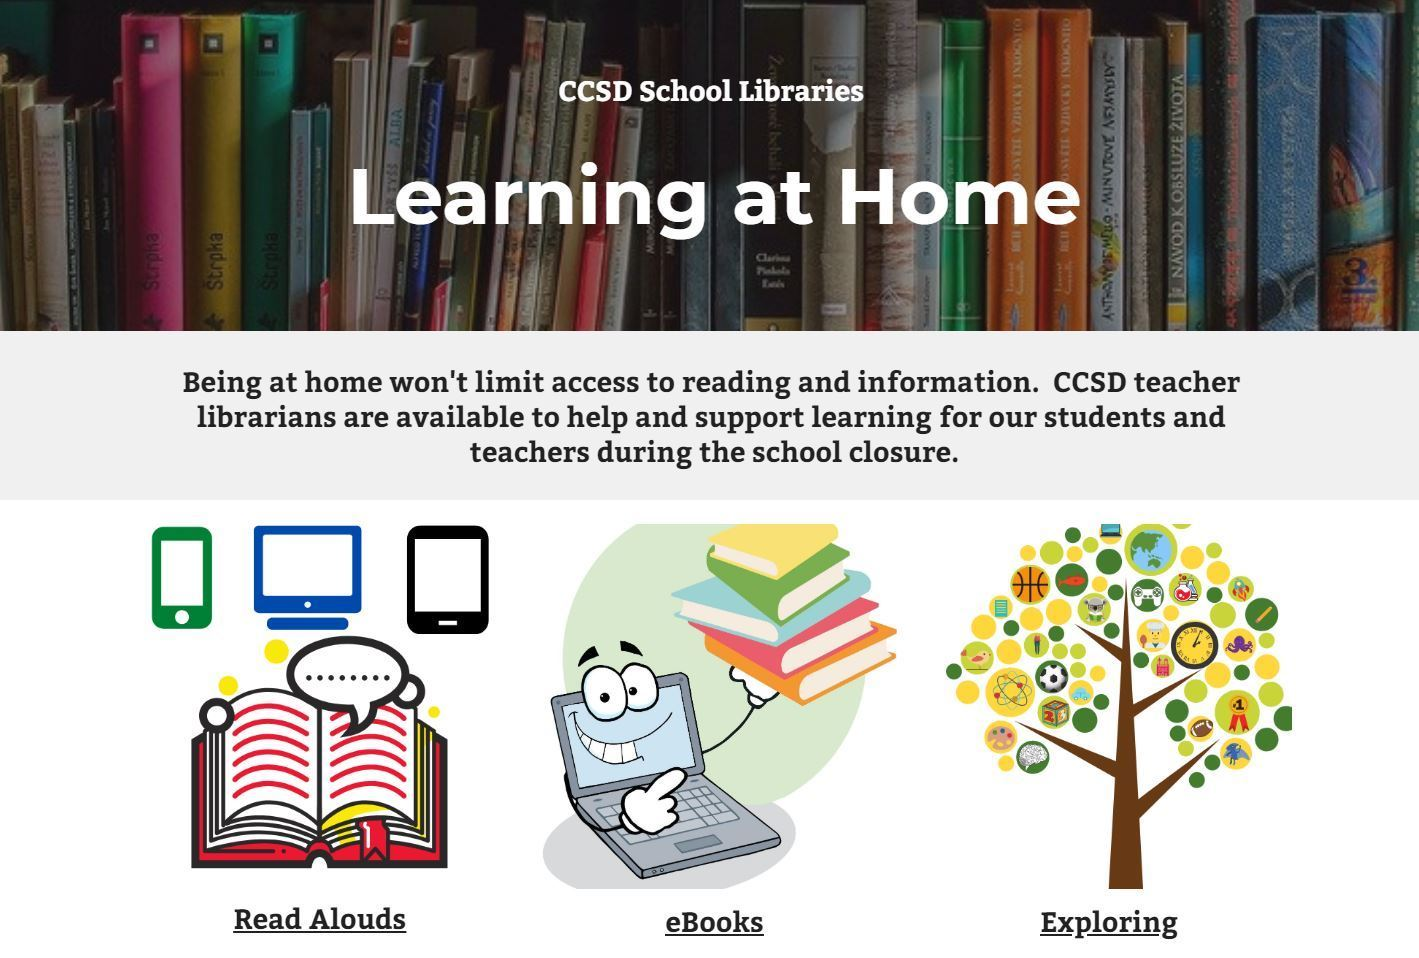 CCSD Libraries Learning at Home